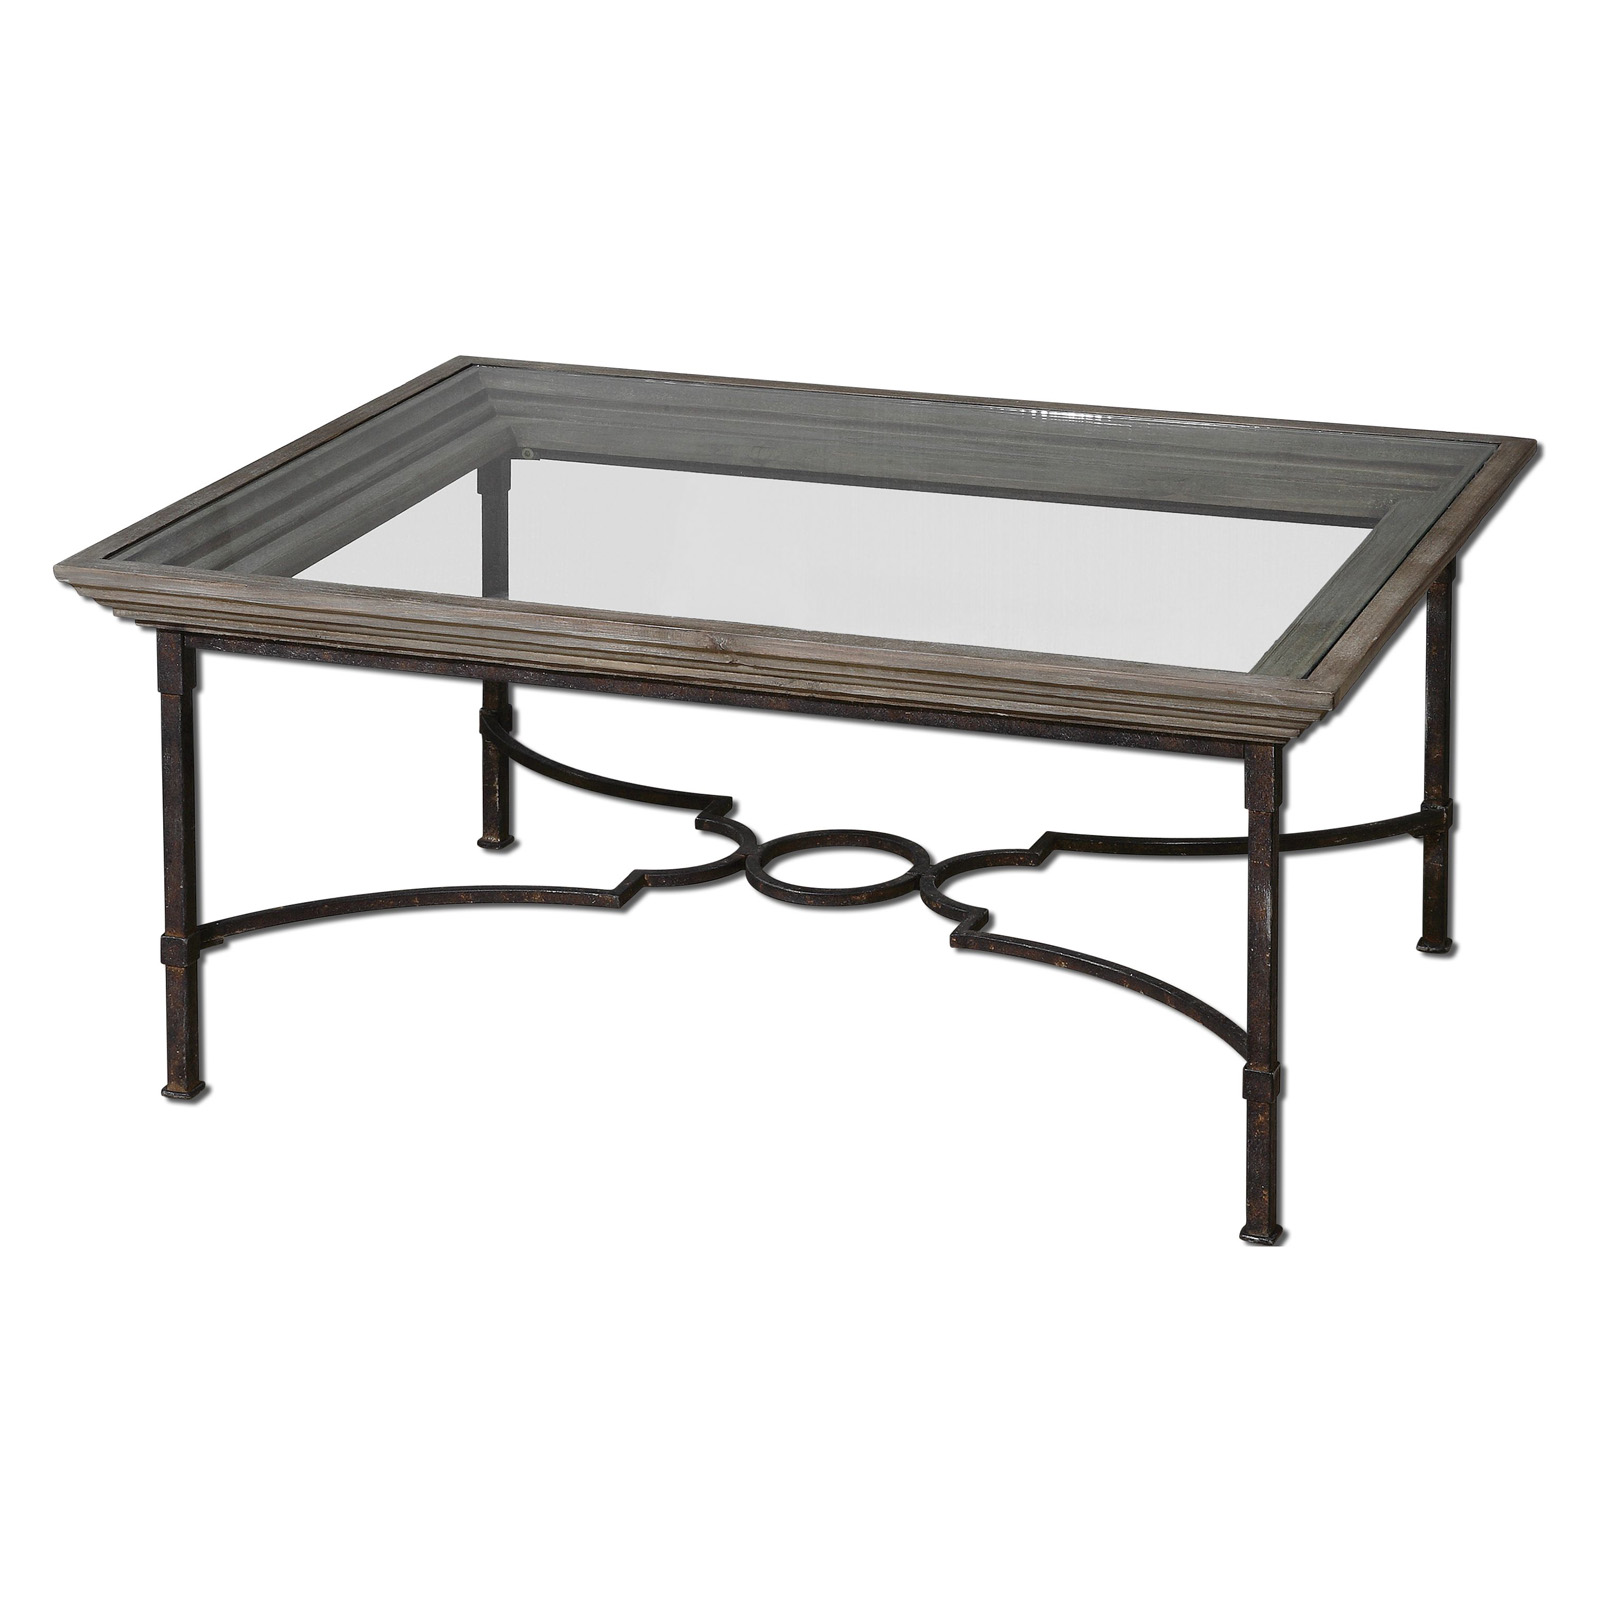 Glass Top Coffee Table With Iron Base: Uttermost Huxley Rectangle Weathered Iron And Glass Top